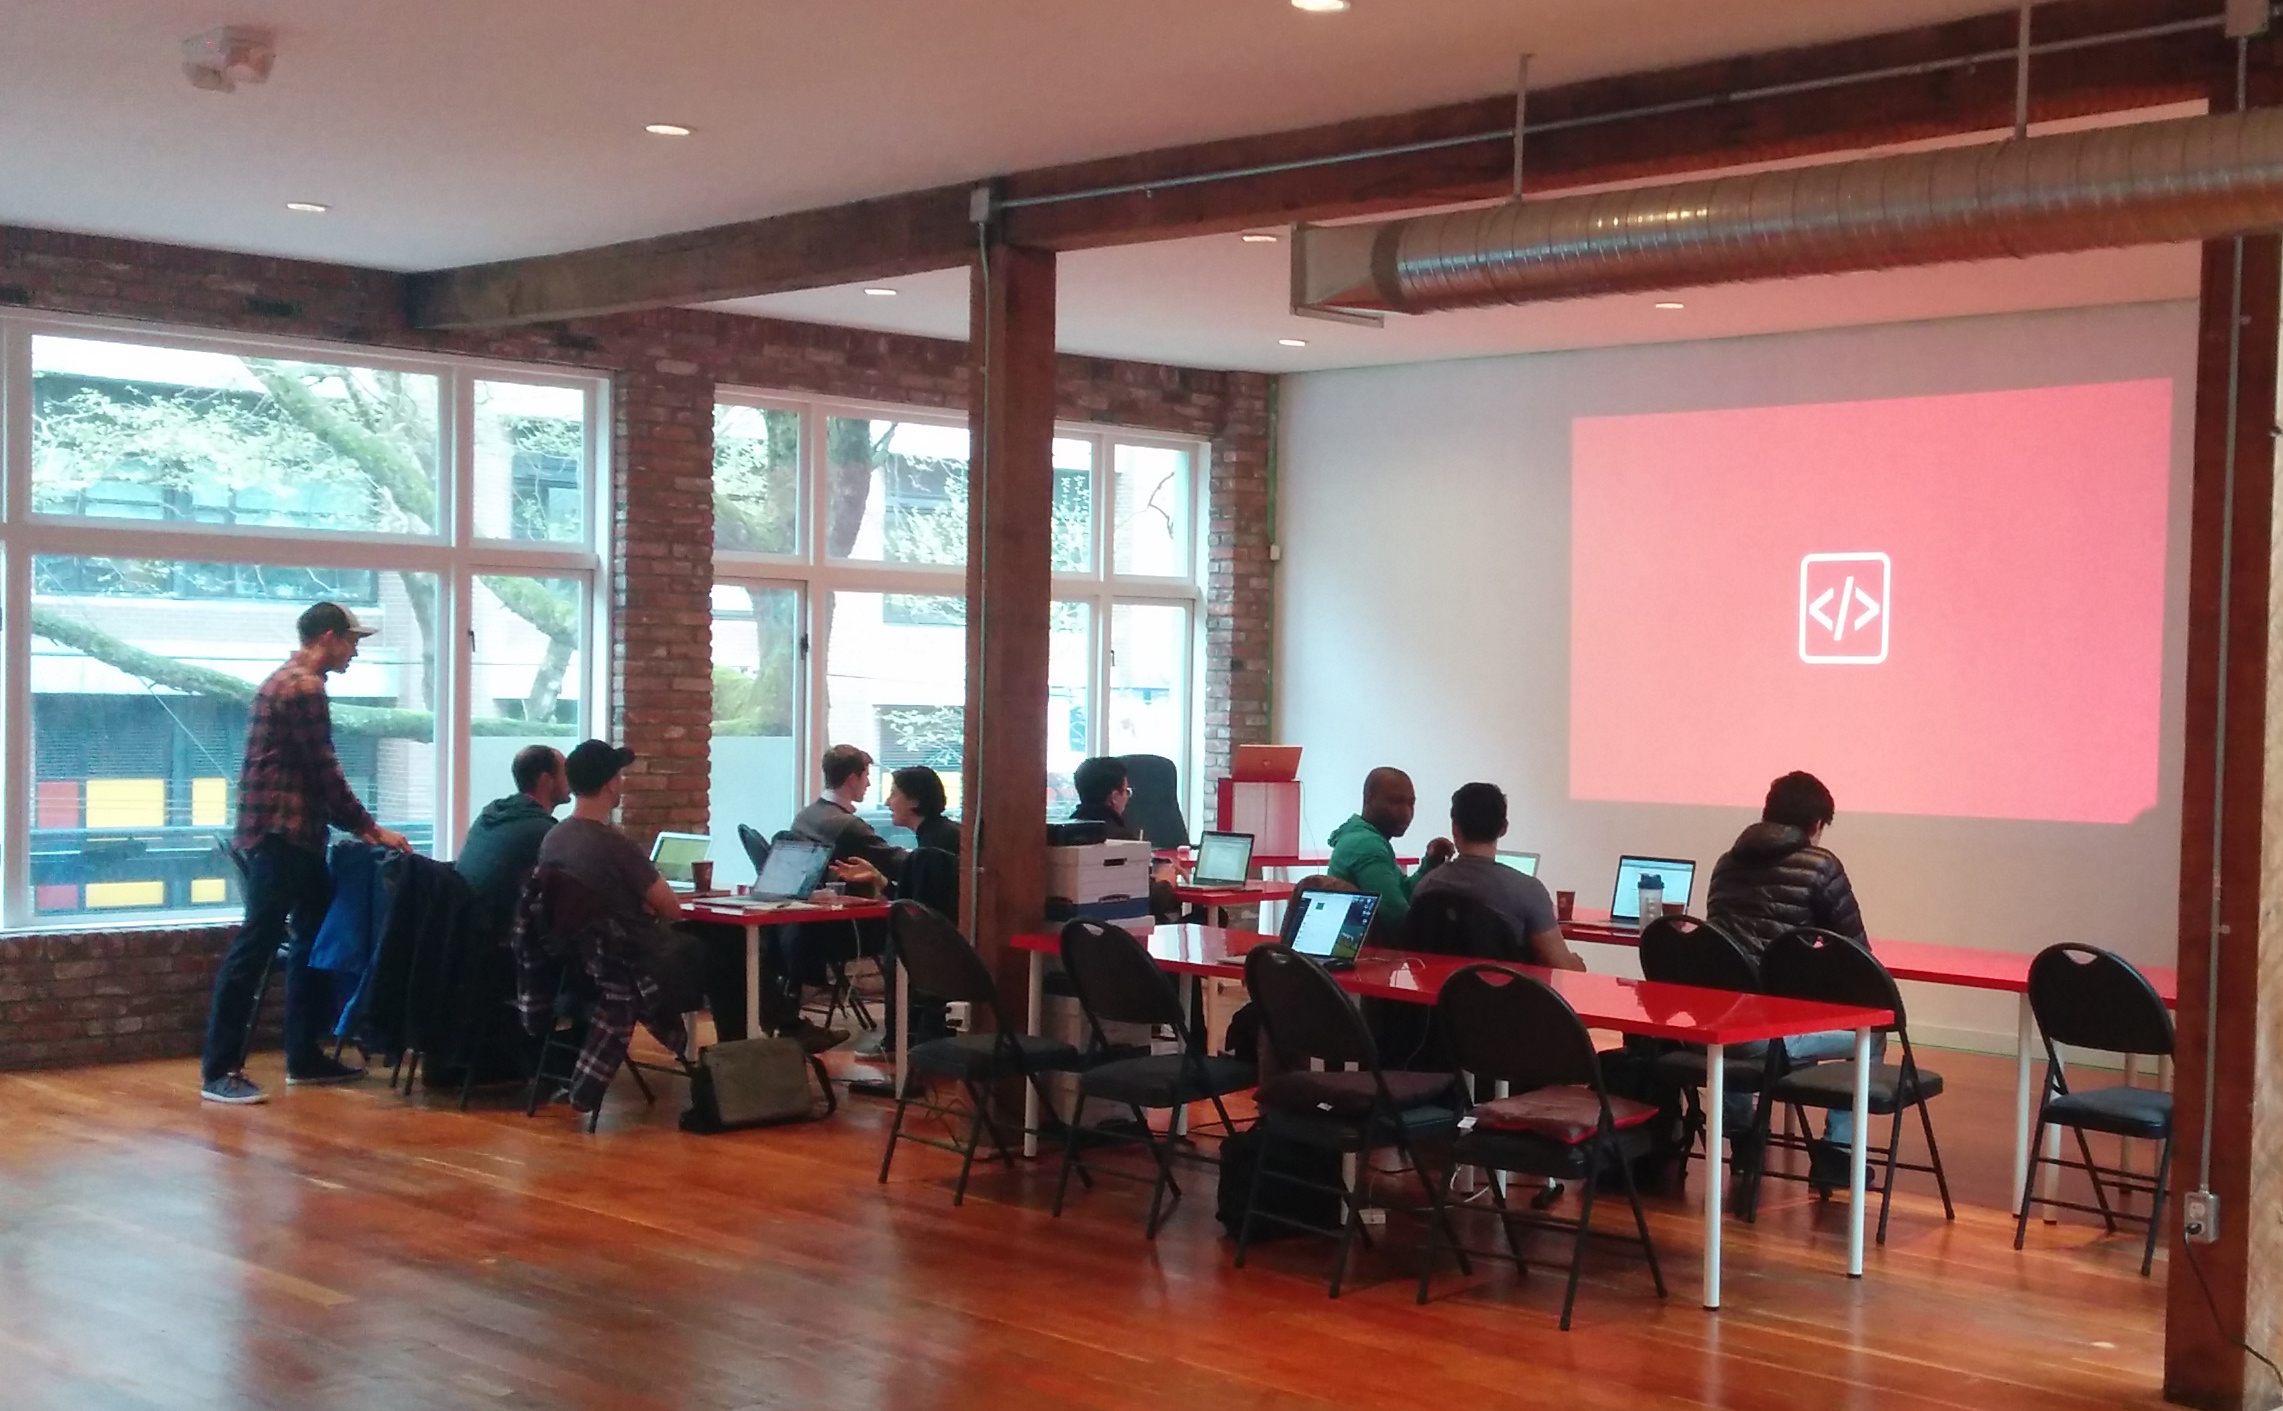 CodeCore Developer Bootcamp New Location at 142 Hastings St.